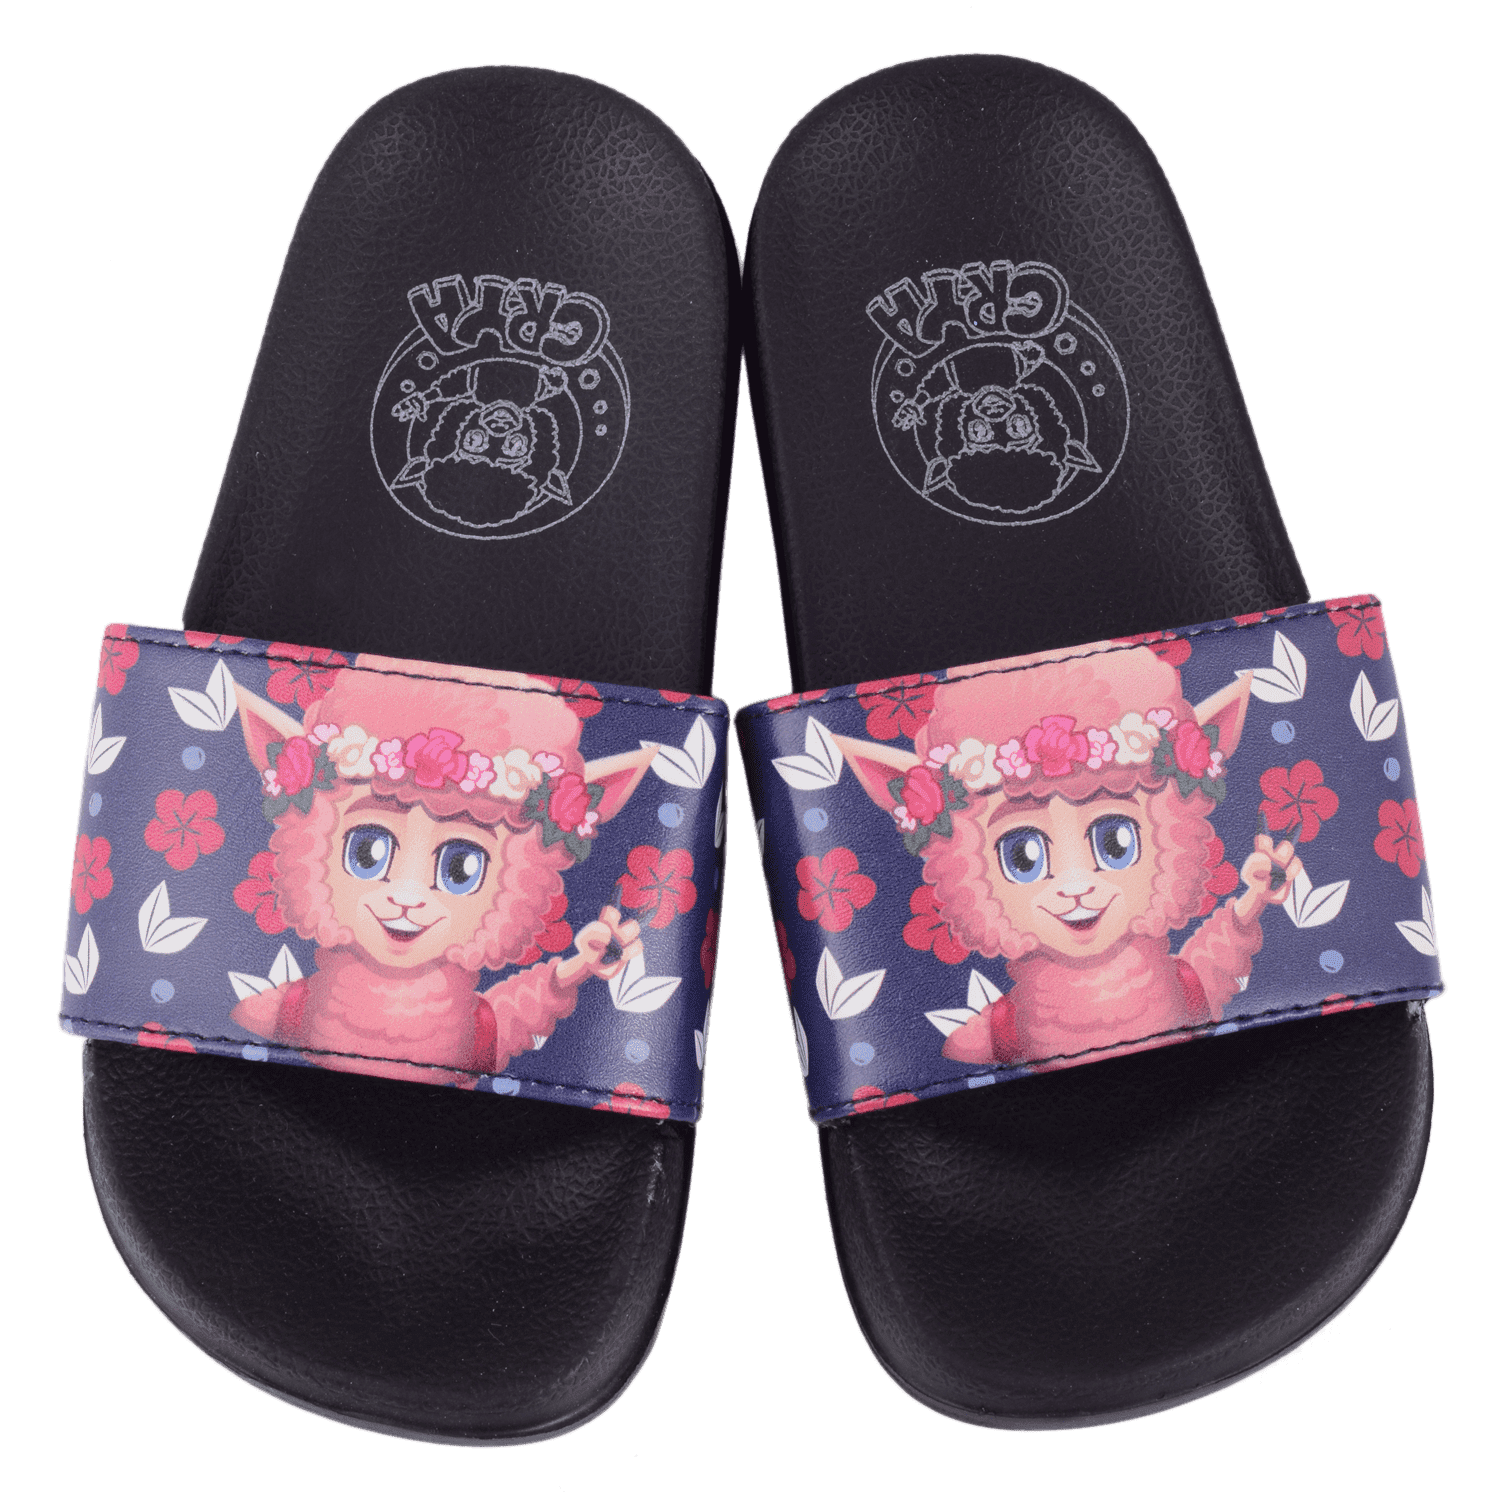 crya-floral-slide-on-slipper-slsl8004flobla